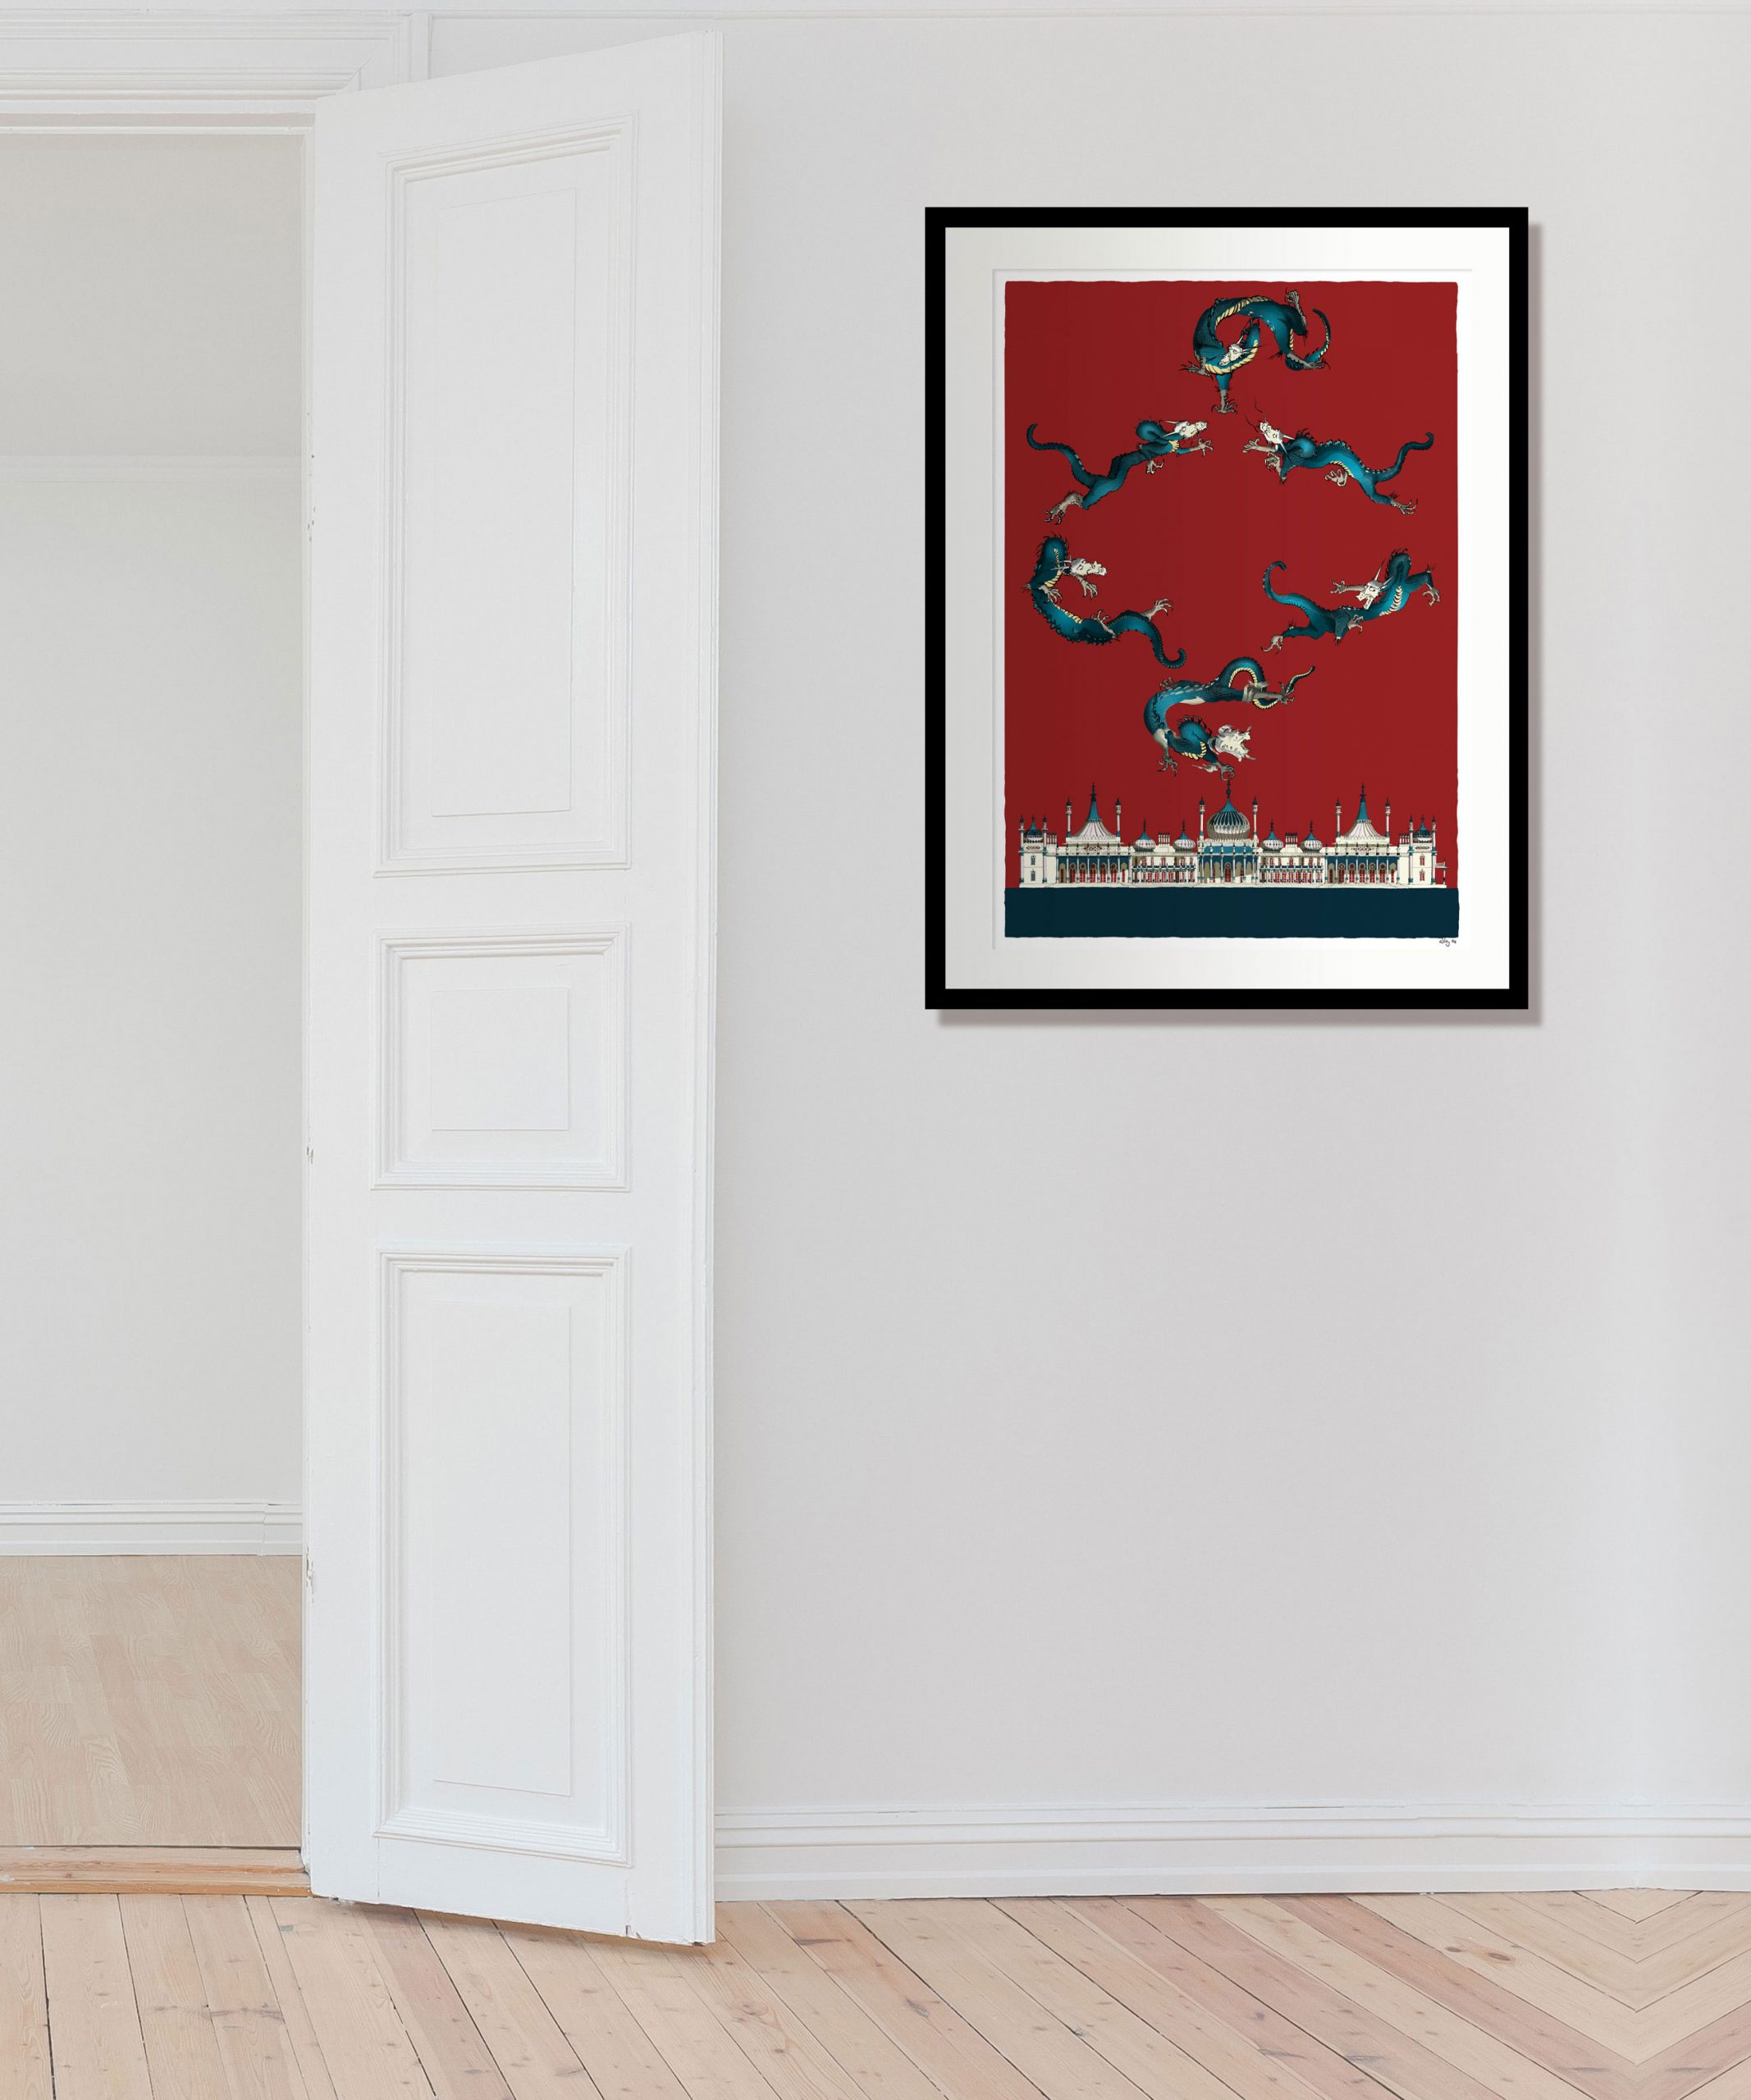 room with print named Chinoiseriez by artist alej ez deptics dragons flying over the Royal Pavilion in Brighton with a red sky